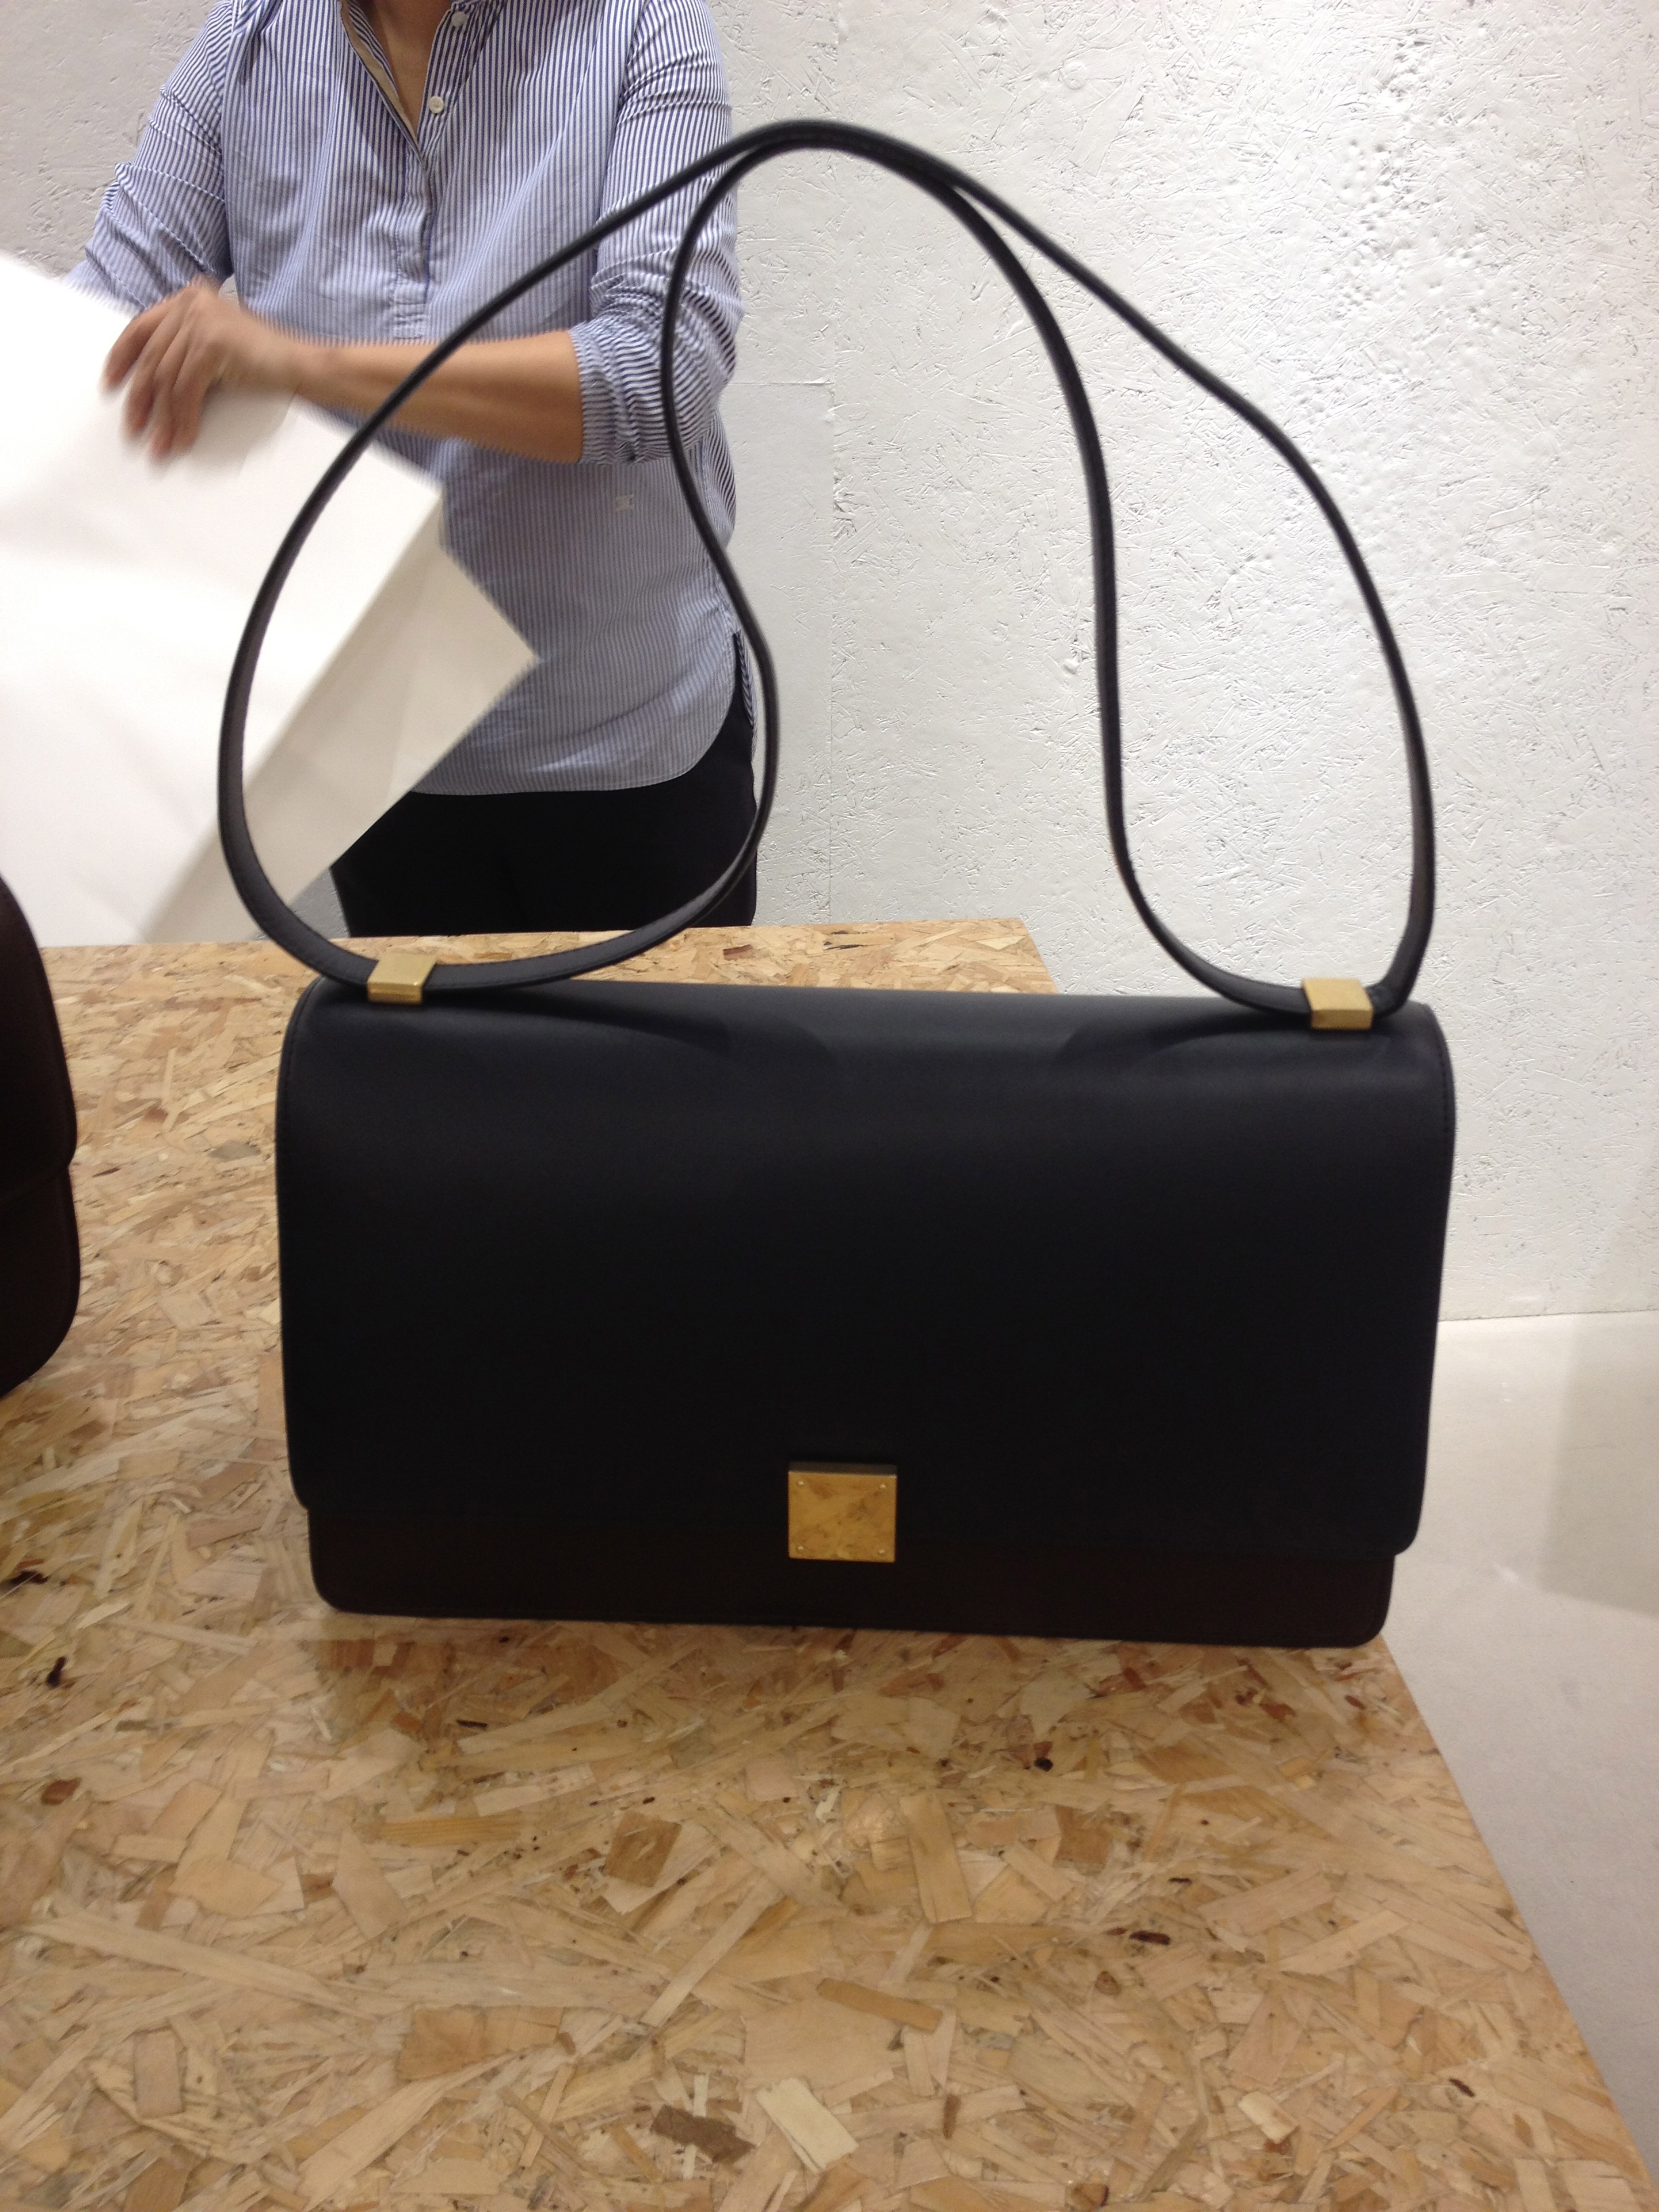 authentic celine bags - a.Fasione's Round Up #14: CELINE CASE BAG �� THROUGH AELA's EYES